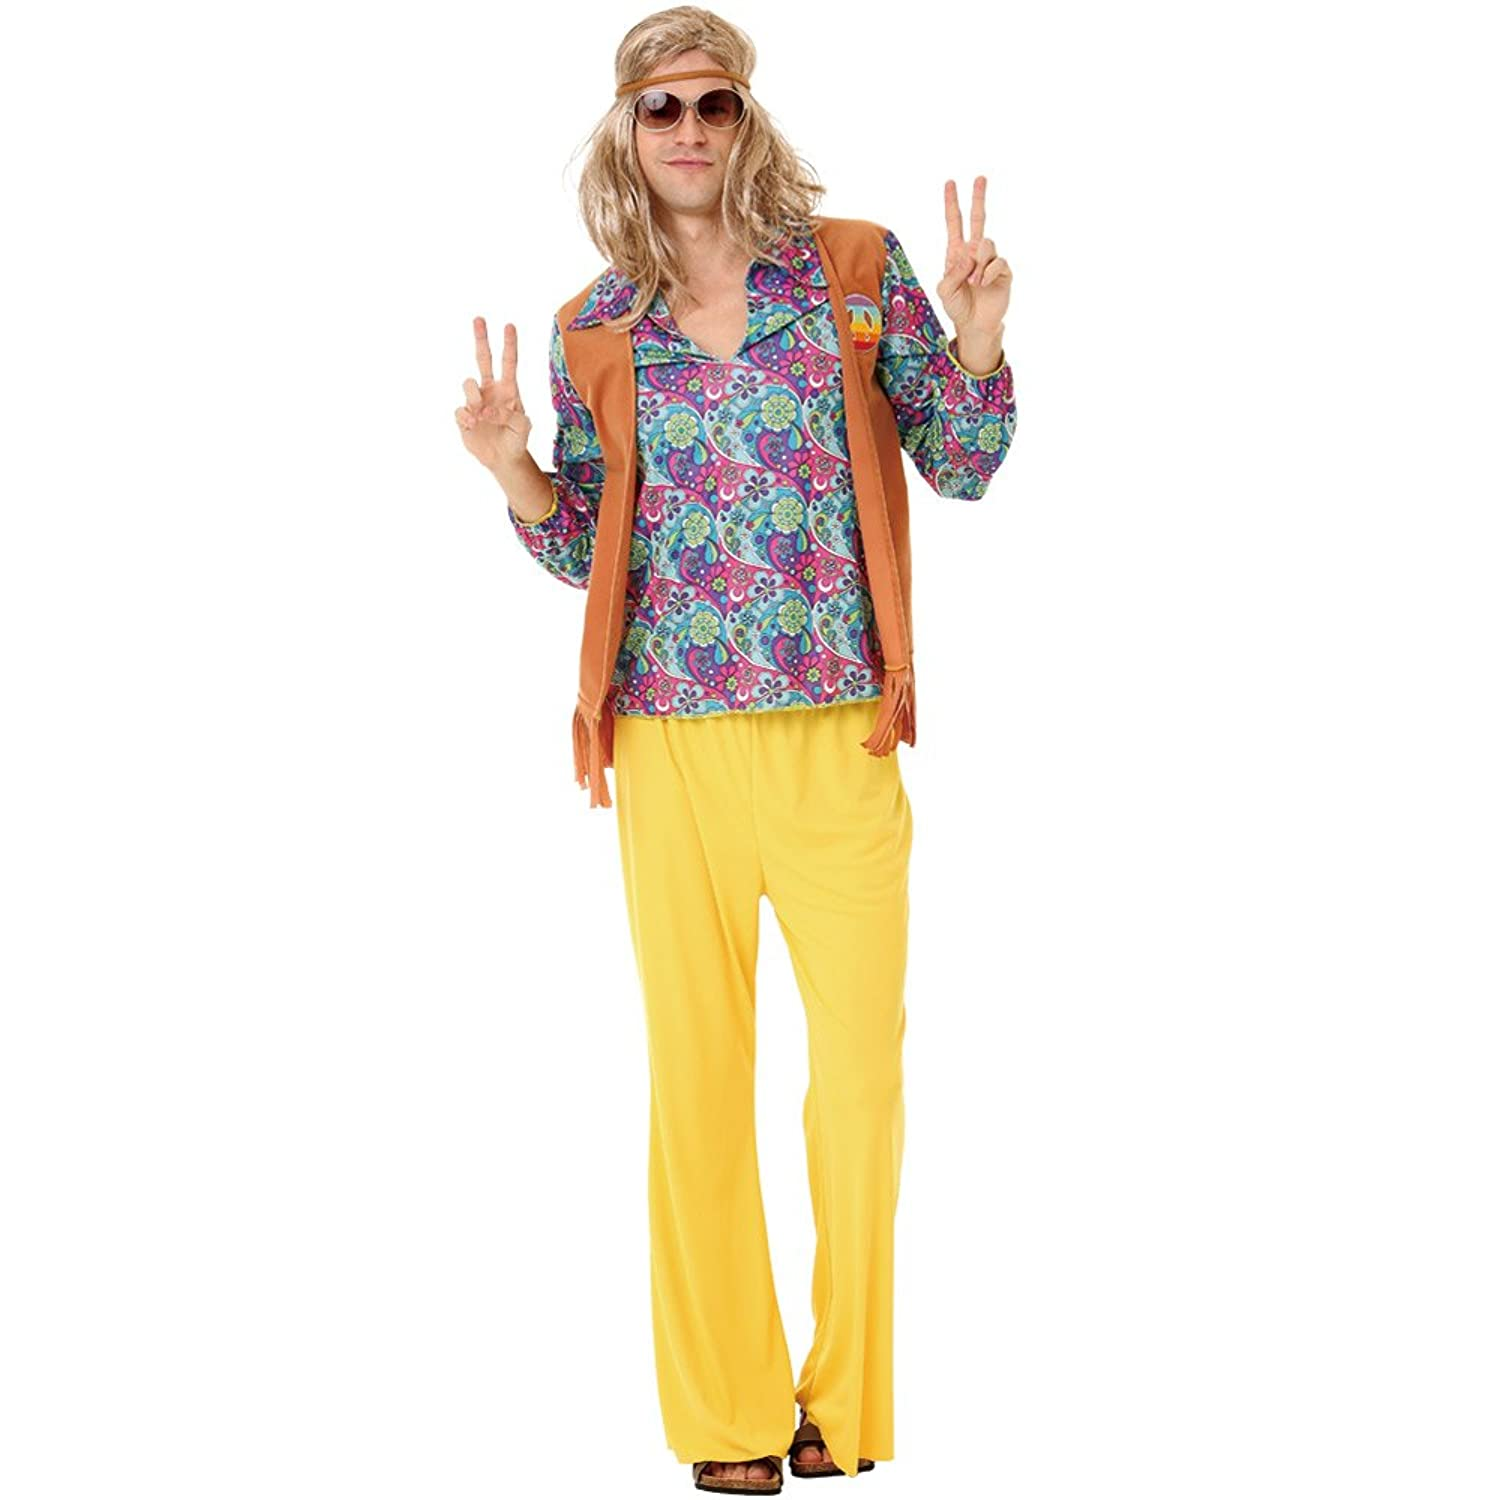 70s Costumes: Disco Costumes, Hippie Outfits Groovy Hippie Mens Halloween Costume 60s Hazy Psychedelic & Funky Outfit $24.99 AT vintagedancer.com